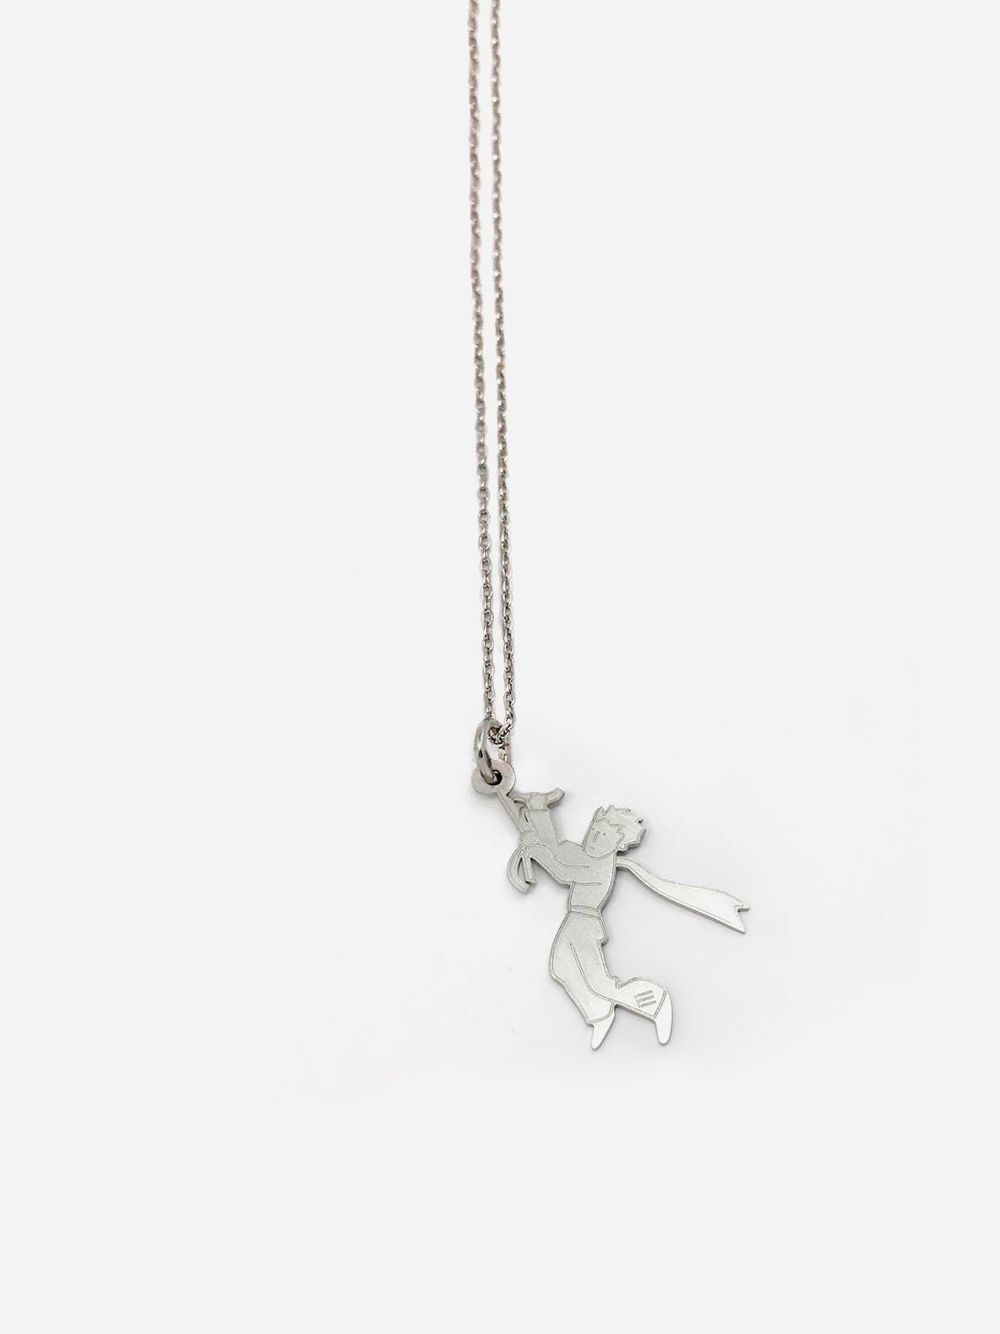 Silver Necklace Little Prince | Made to Envy